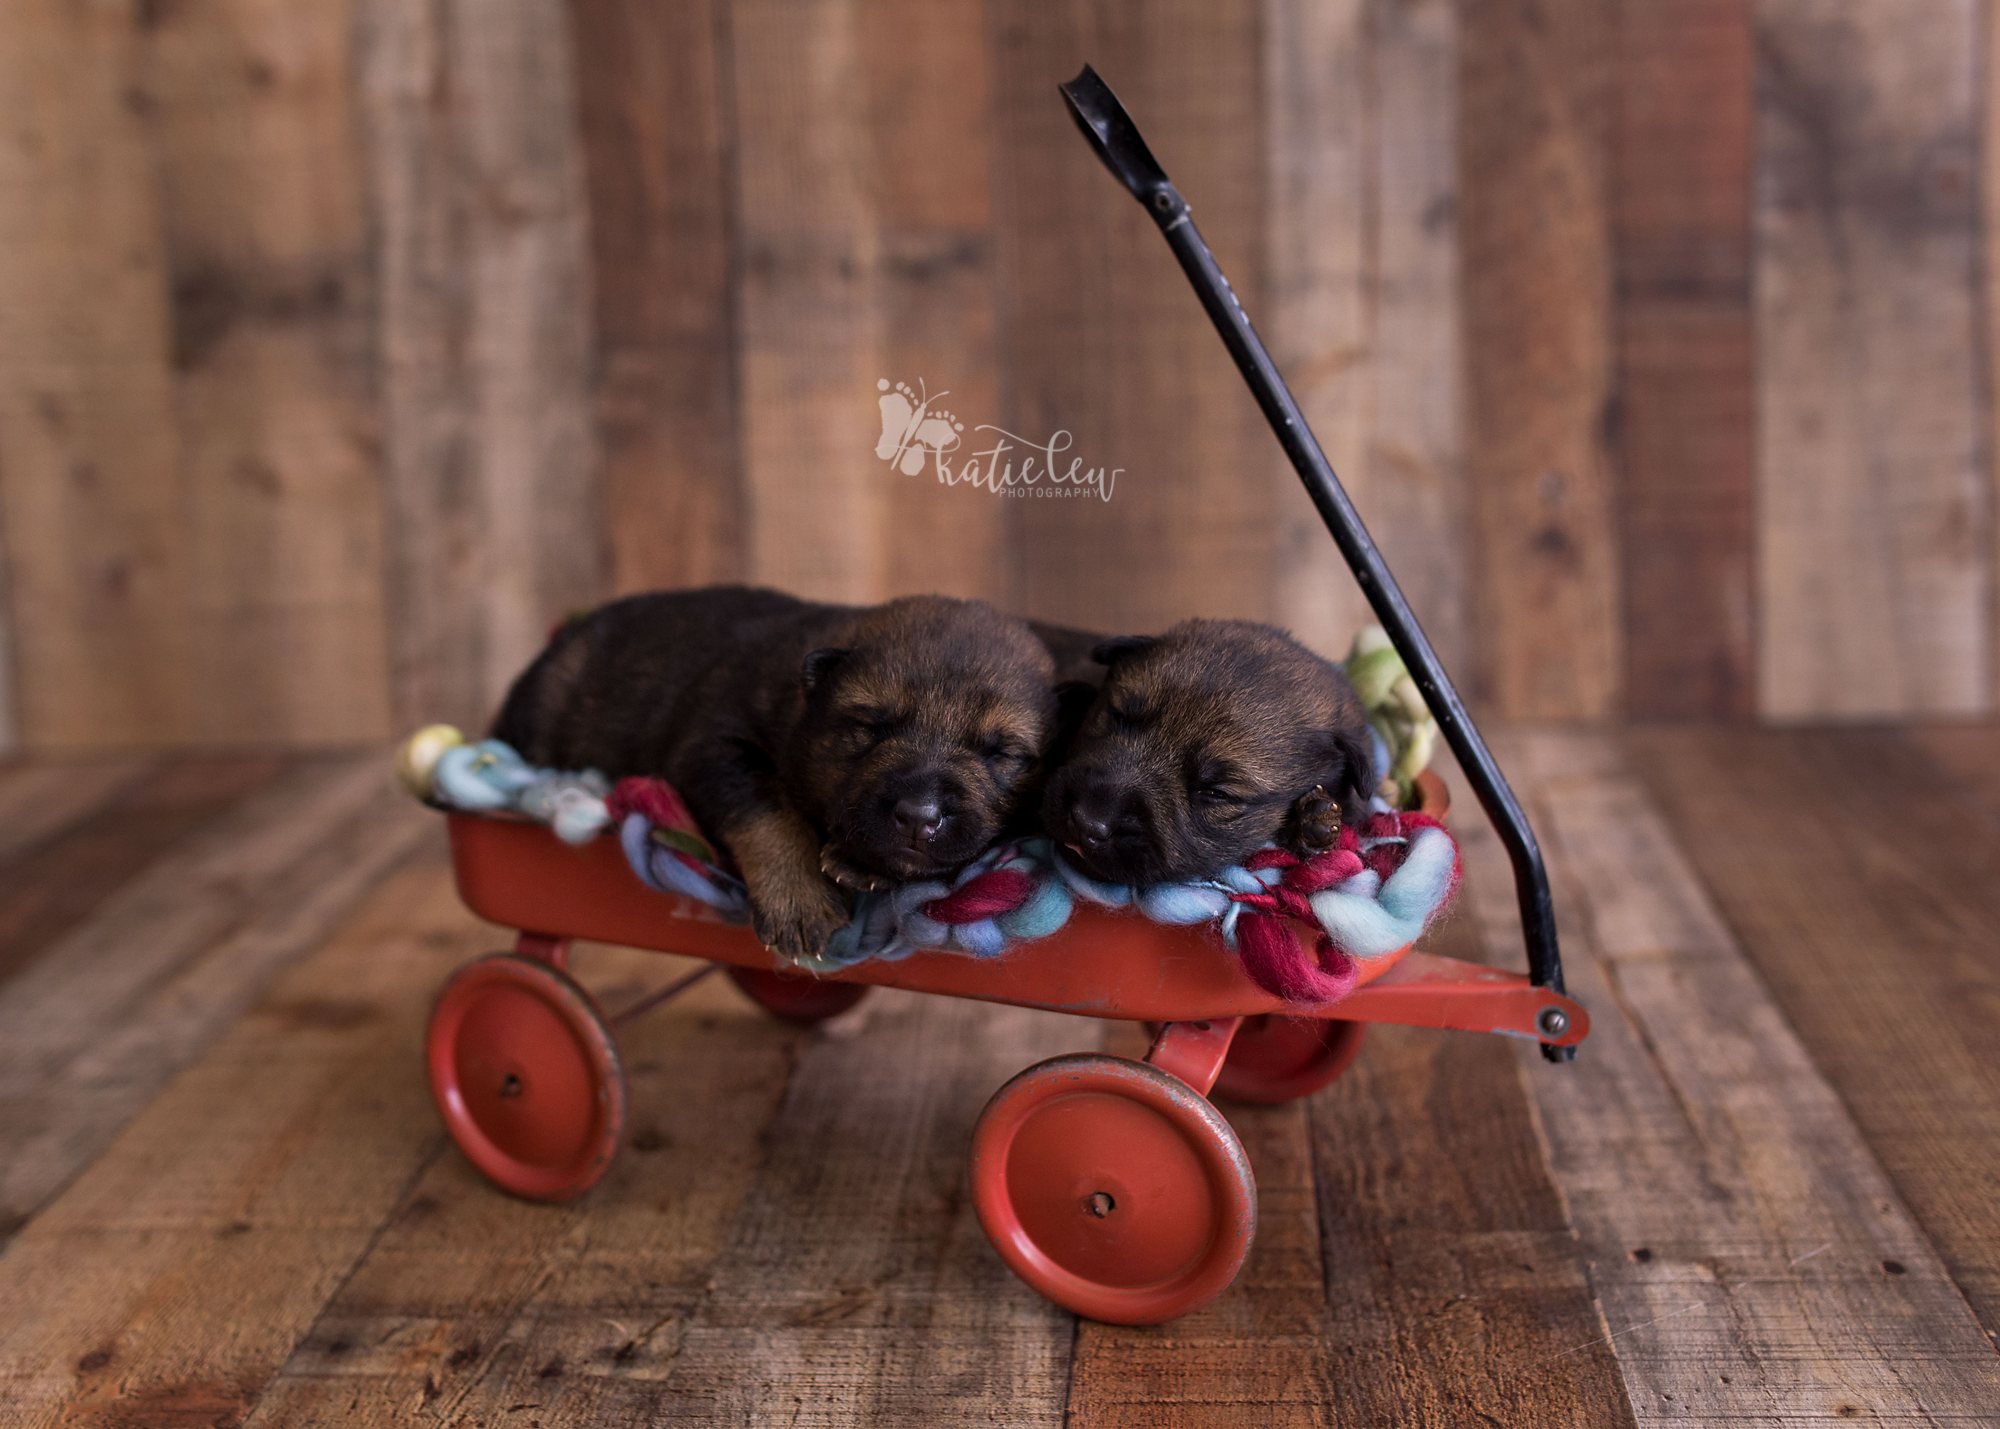 Katielew Photography That Time I Photographed German Shepherd Puppies Stillwater Ok Photographer Northern Oklahoma Newborn Birth Photographer Blog In 2020 German Shepherd Puppies Puppy Photography Puppies